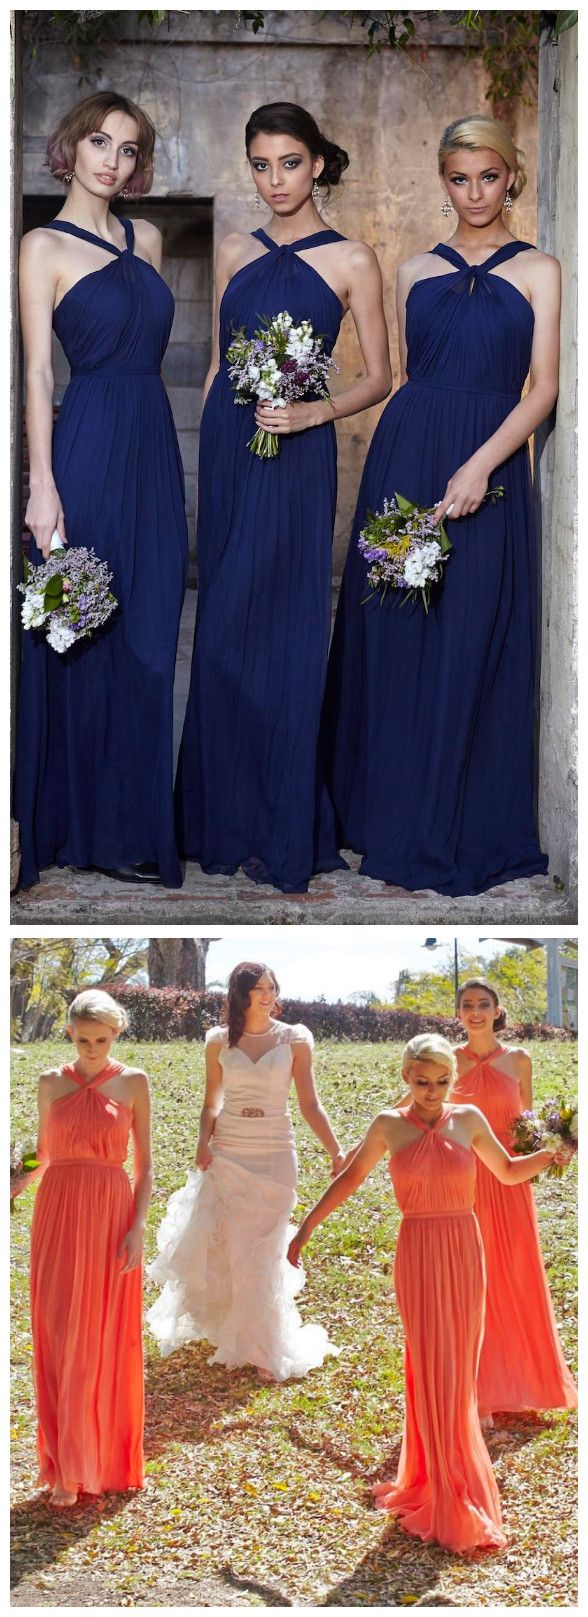 New halter royal blue chiffon bridesmaid dresses under 100 long new halter royal blue chiffon bridesmaid dresses under 100 long chiffon full length bridesmaids maid of ombrellifo Image collections